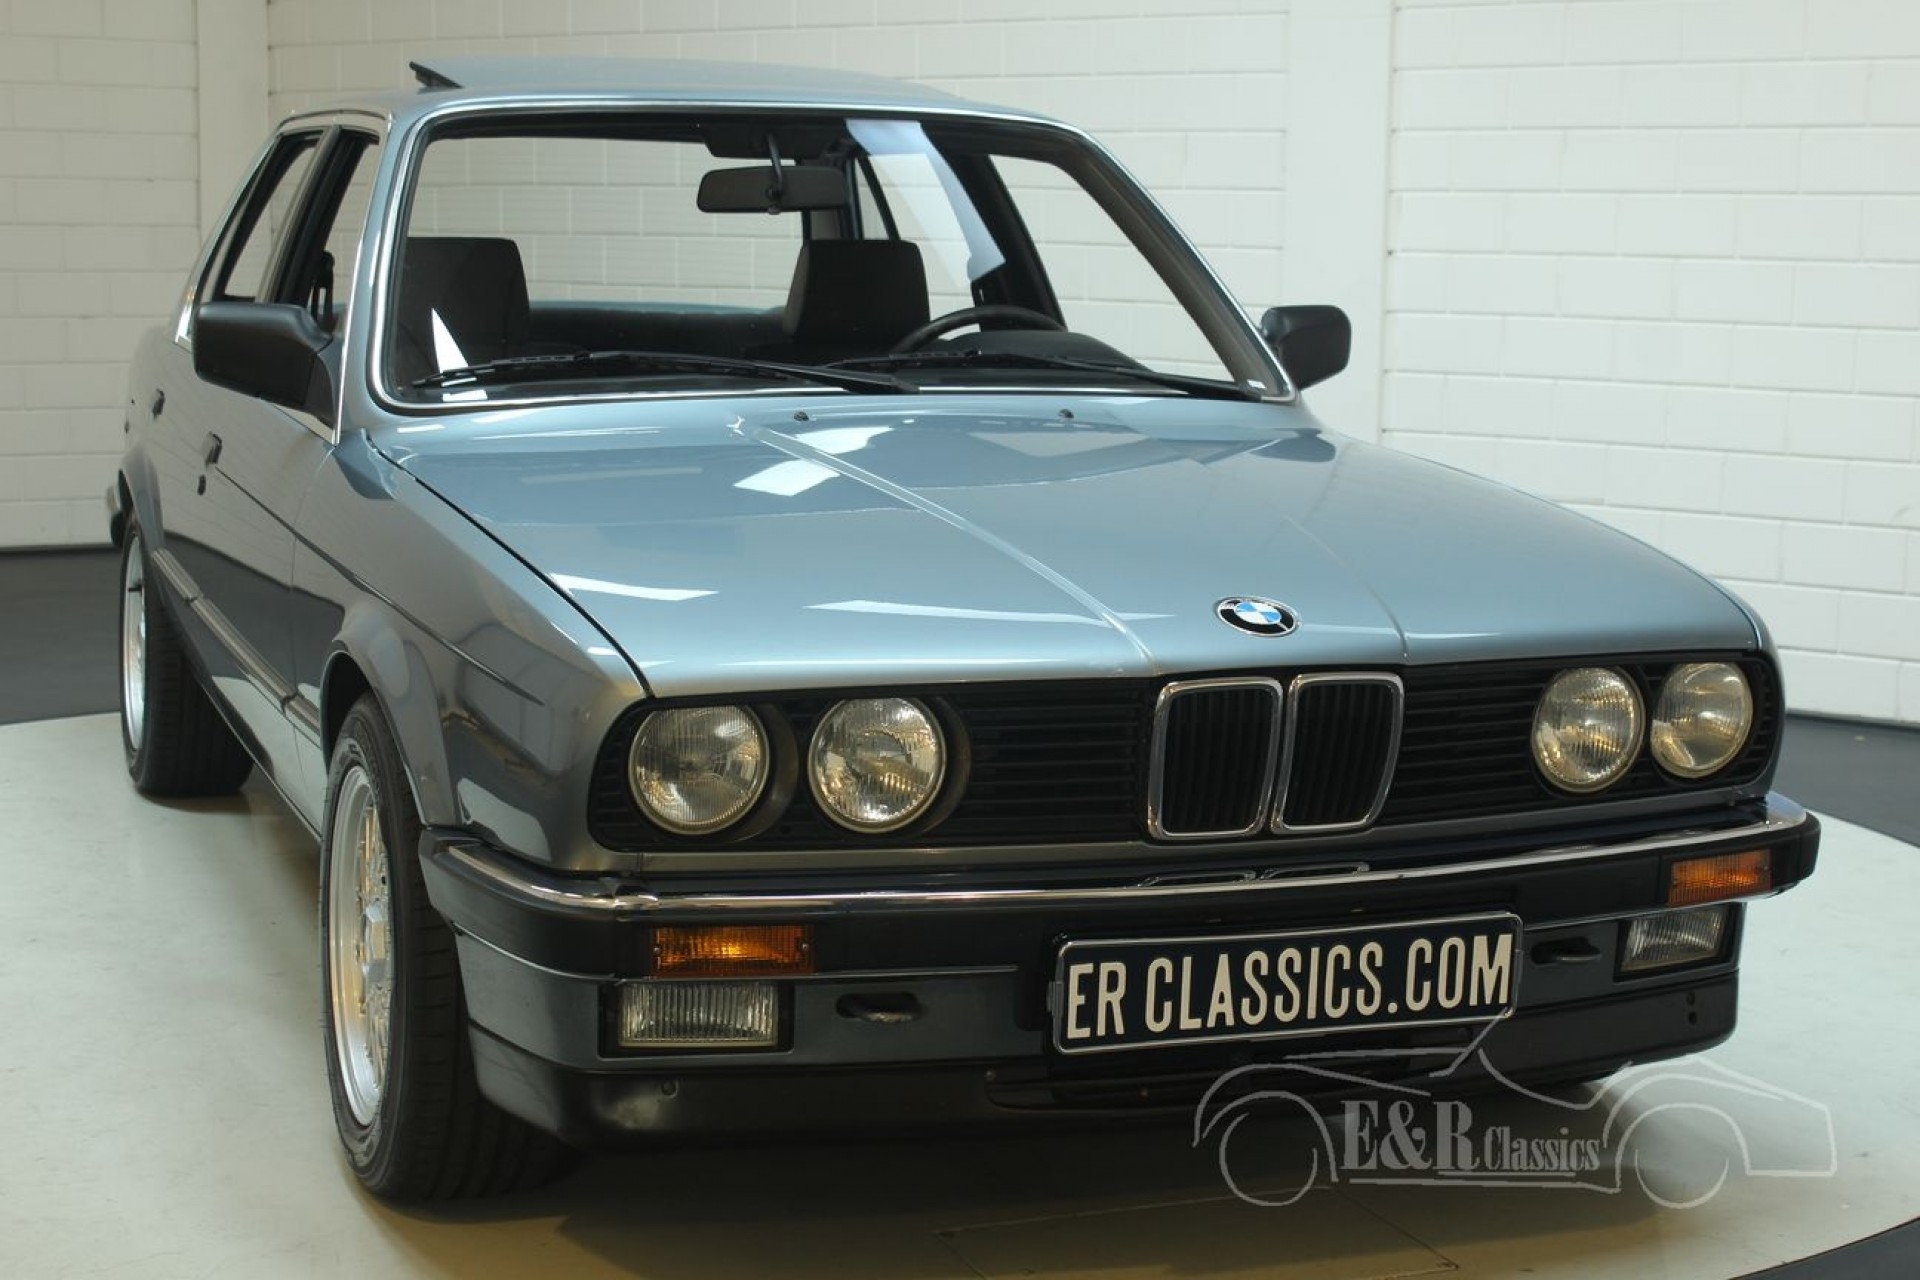 Bmw 325i For Sale >> Bmw 325i E30 1986 For Sale At Erclassics